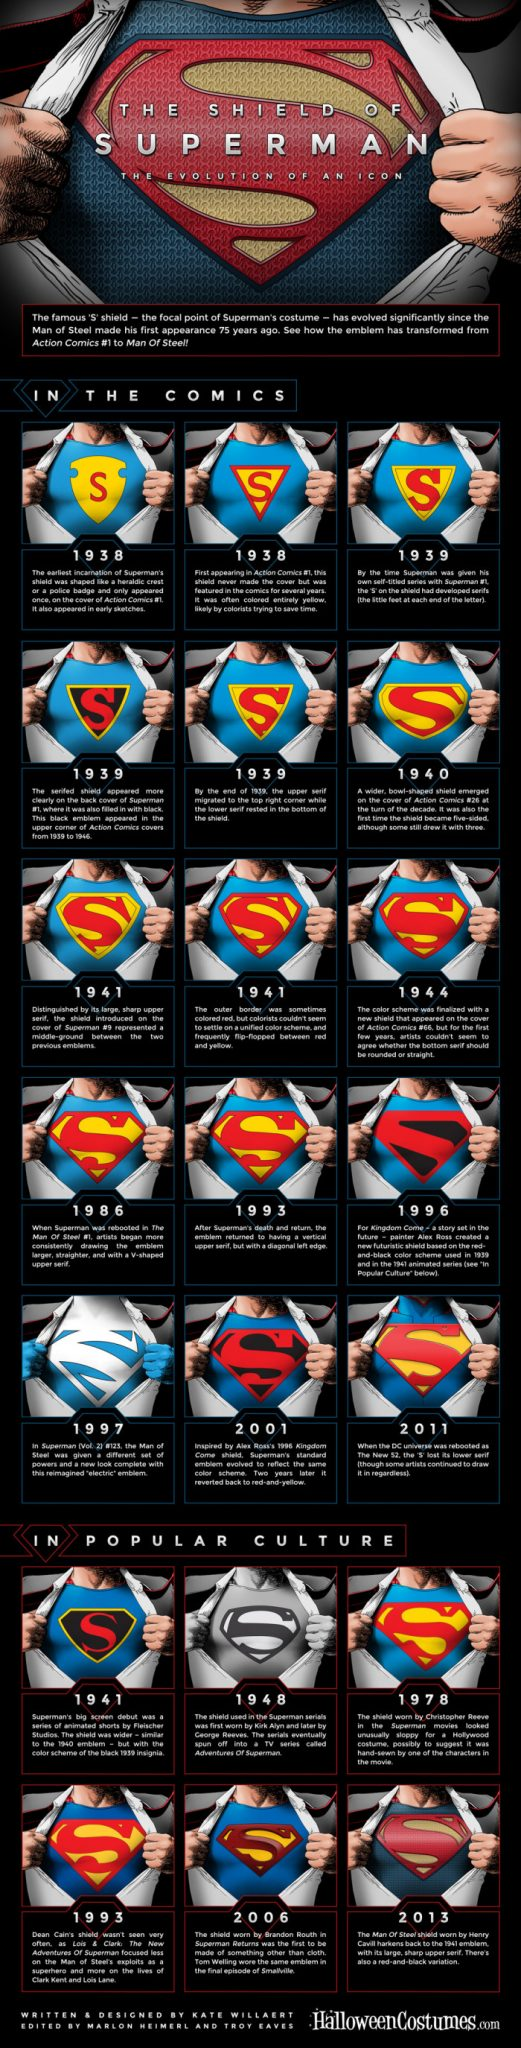 superman-infographic-FULL-1